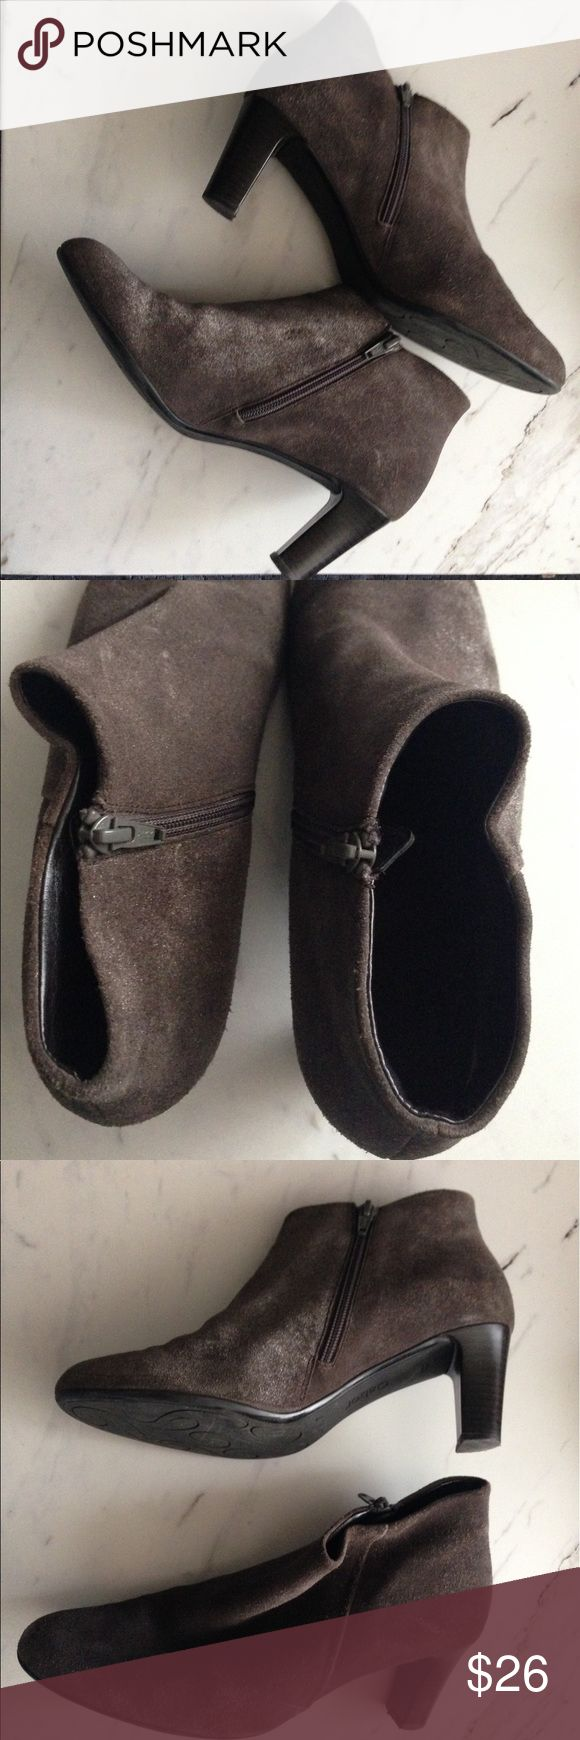 Gabor Brown Suede sparkle ankle side zip boots Gabor Ladies Brown Suede sparkle ankle side zip boots size 7-EUC! normal amount of wear around the front of both boots- not as noticeable since the boots are made of a suede material. Zips at the sides. gabor Shoes Ankle Boots & Booties